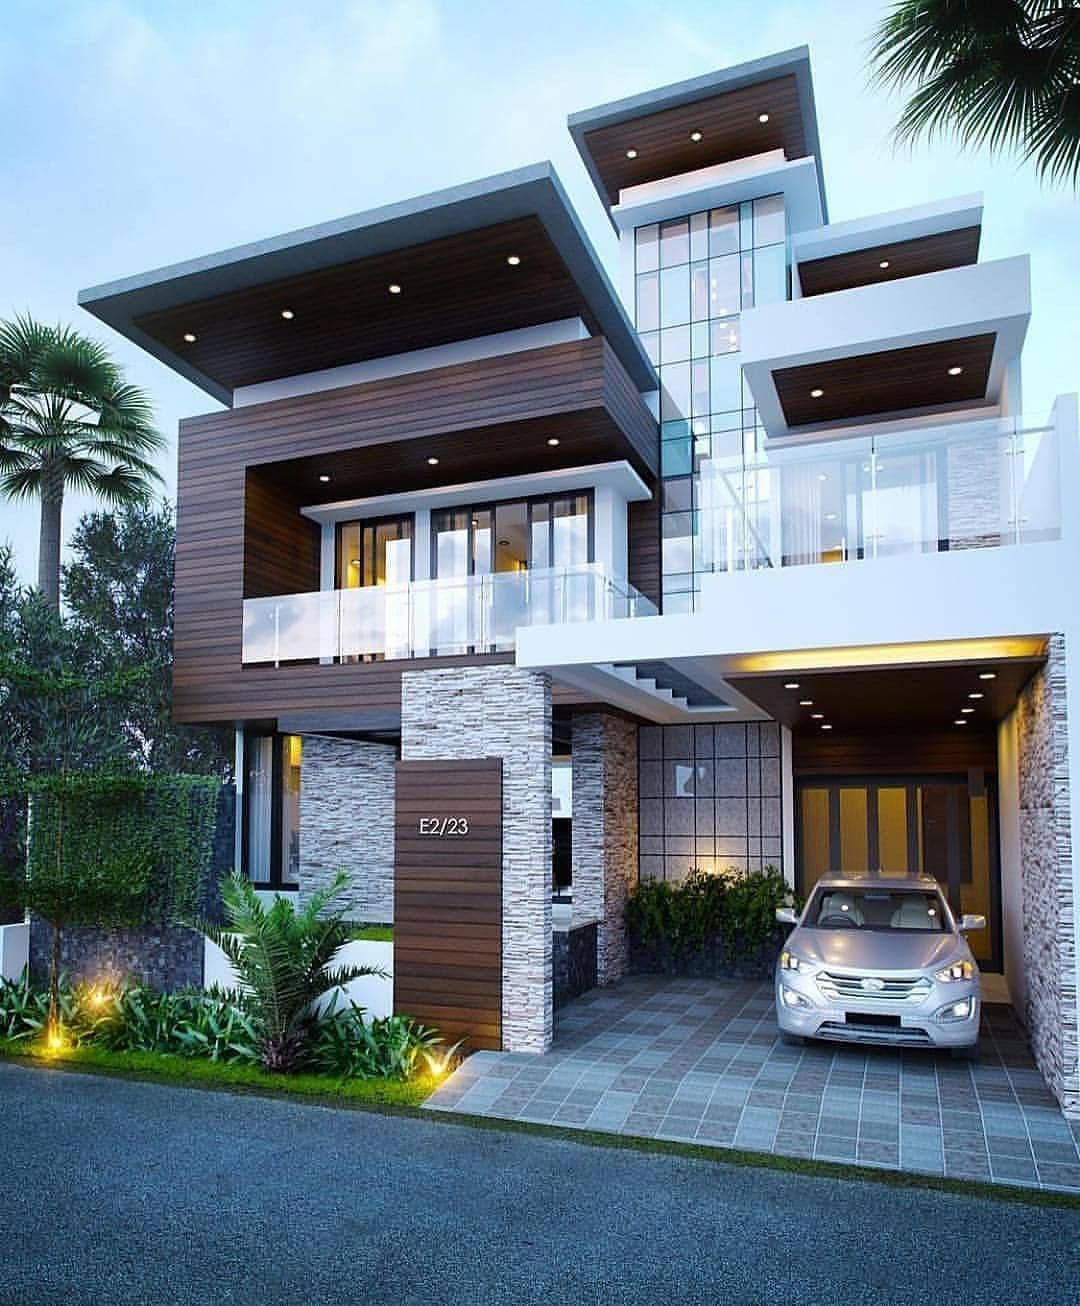 Modern Architecture Homes Pictures Best Of Follow Minimalismoarchitecture for More Modern Architecture